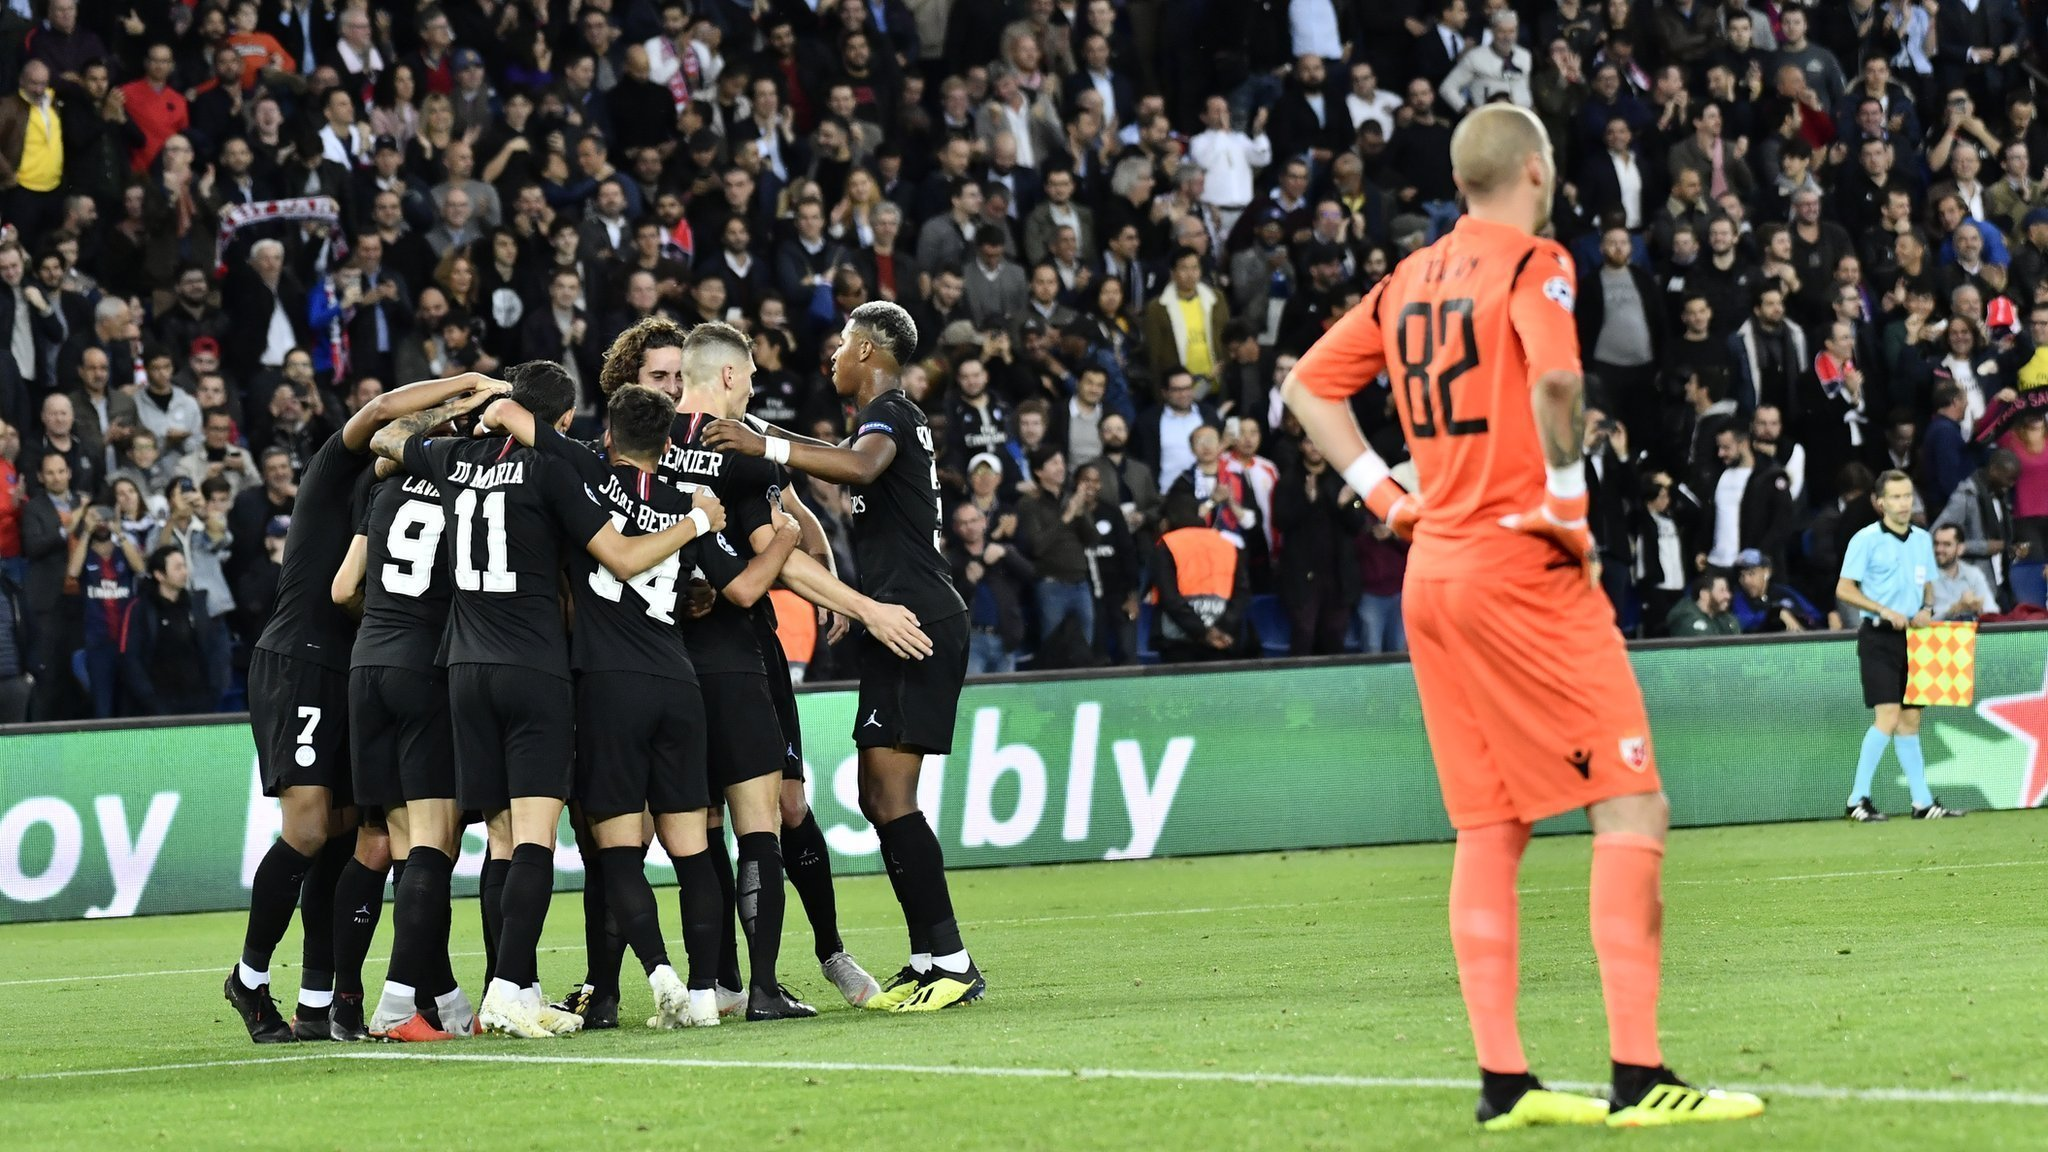 PSG-Red Star crowd trouble investigated by Uefa